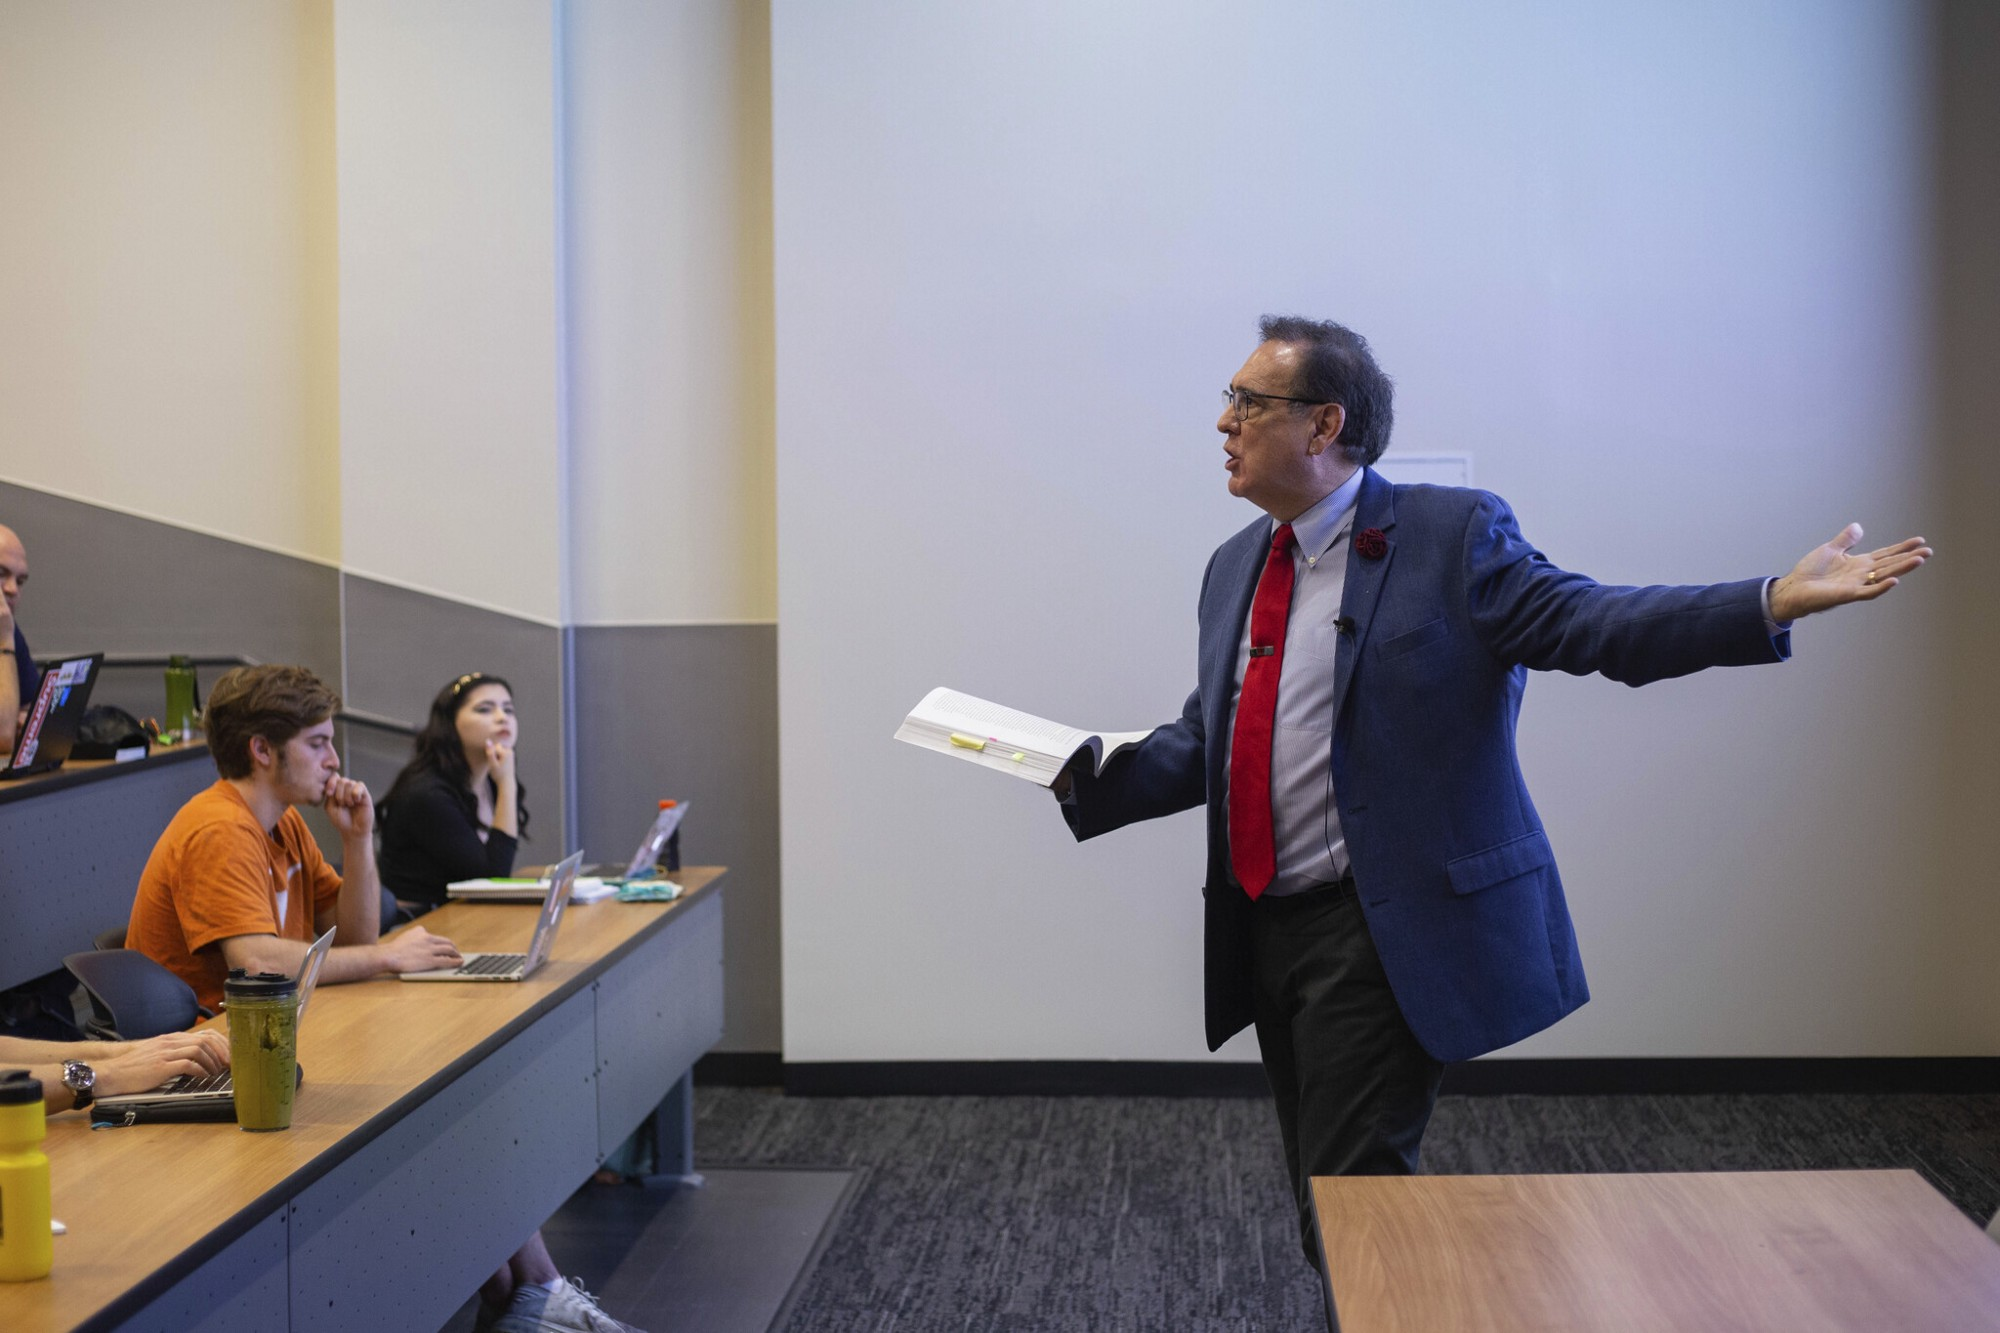 Thomas Garza stands in the front of a classroom of students holding a book and gesturing to the screen behind him.